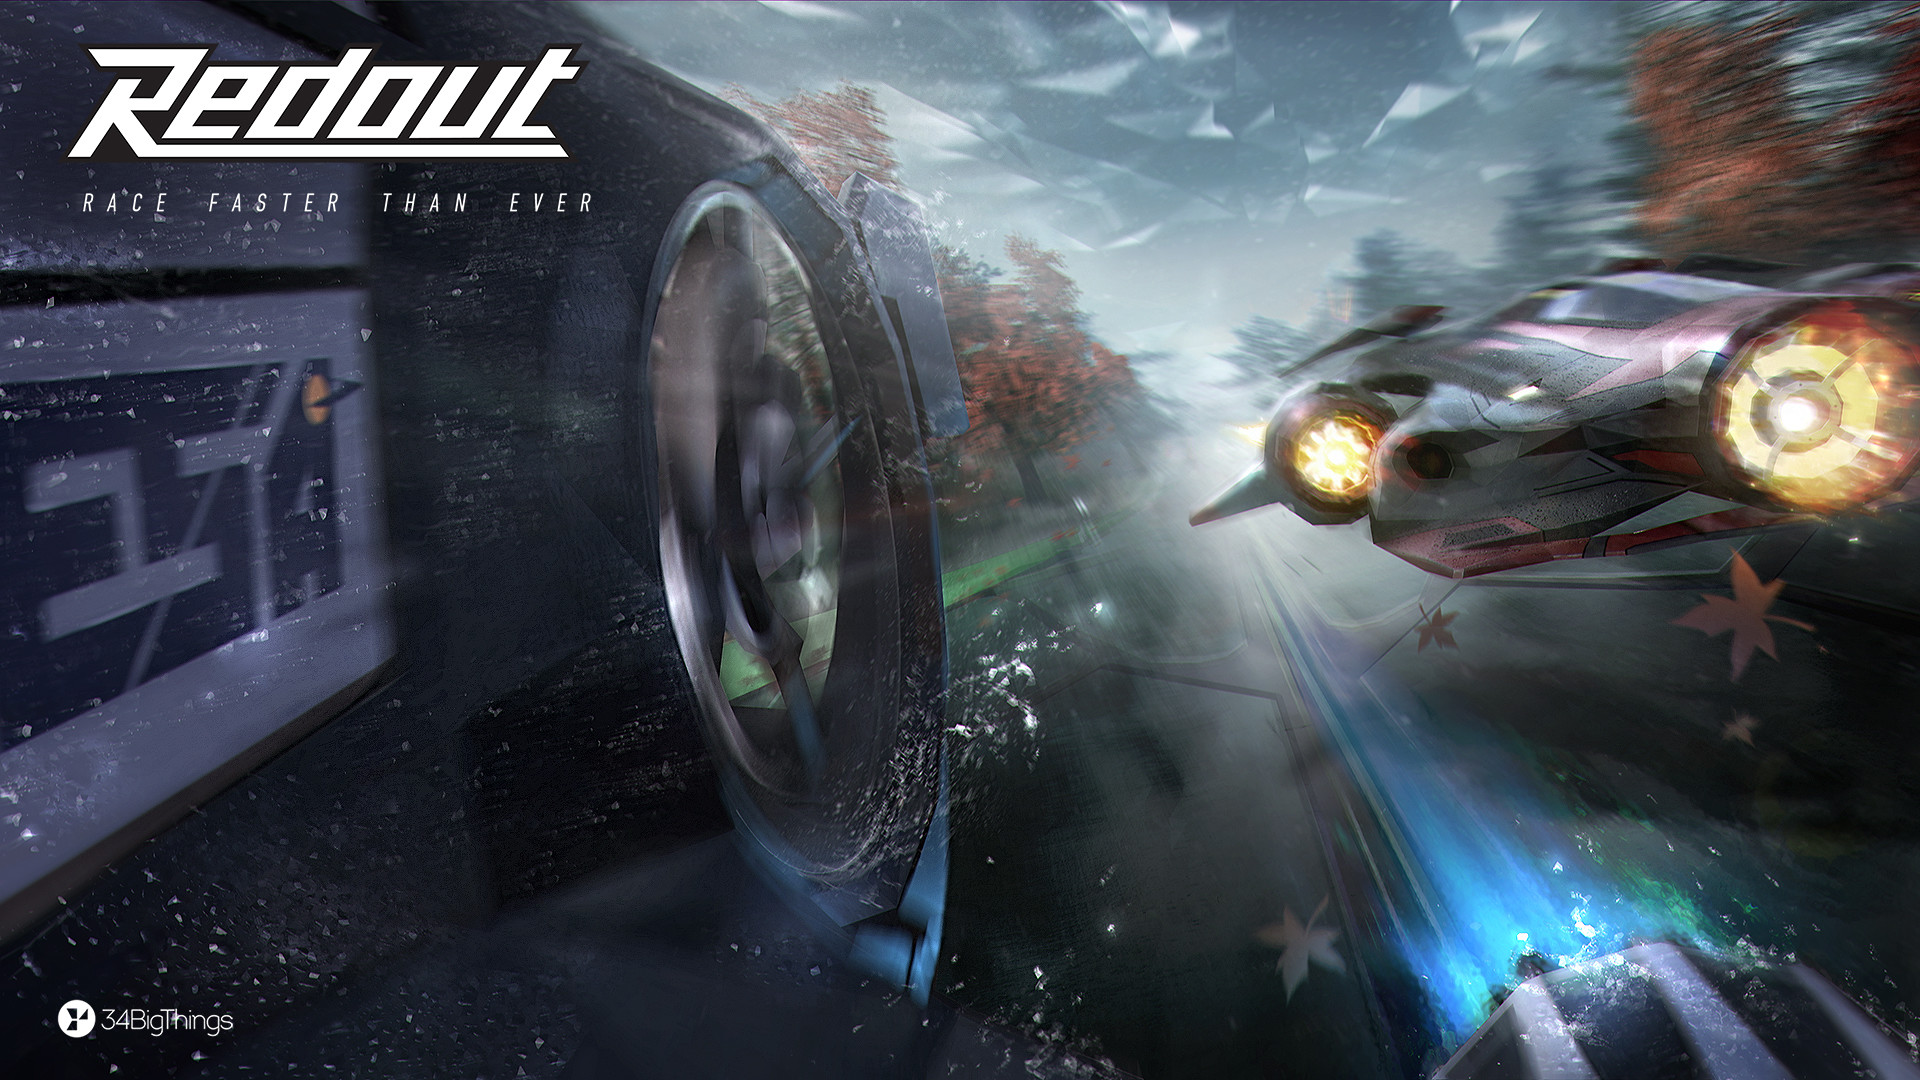 redout 34bigthings - christian steve scampini